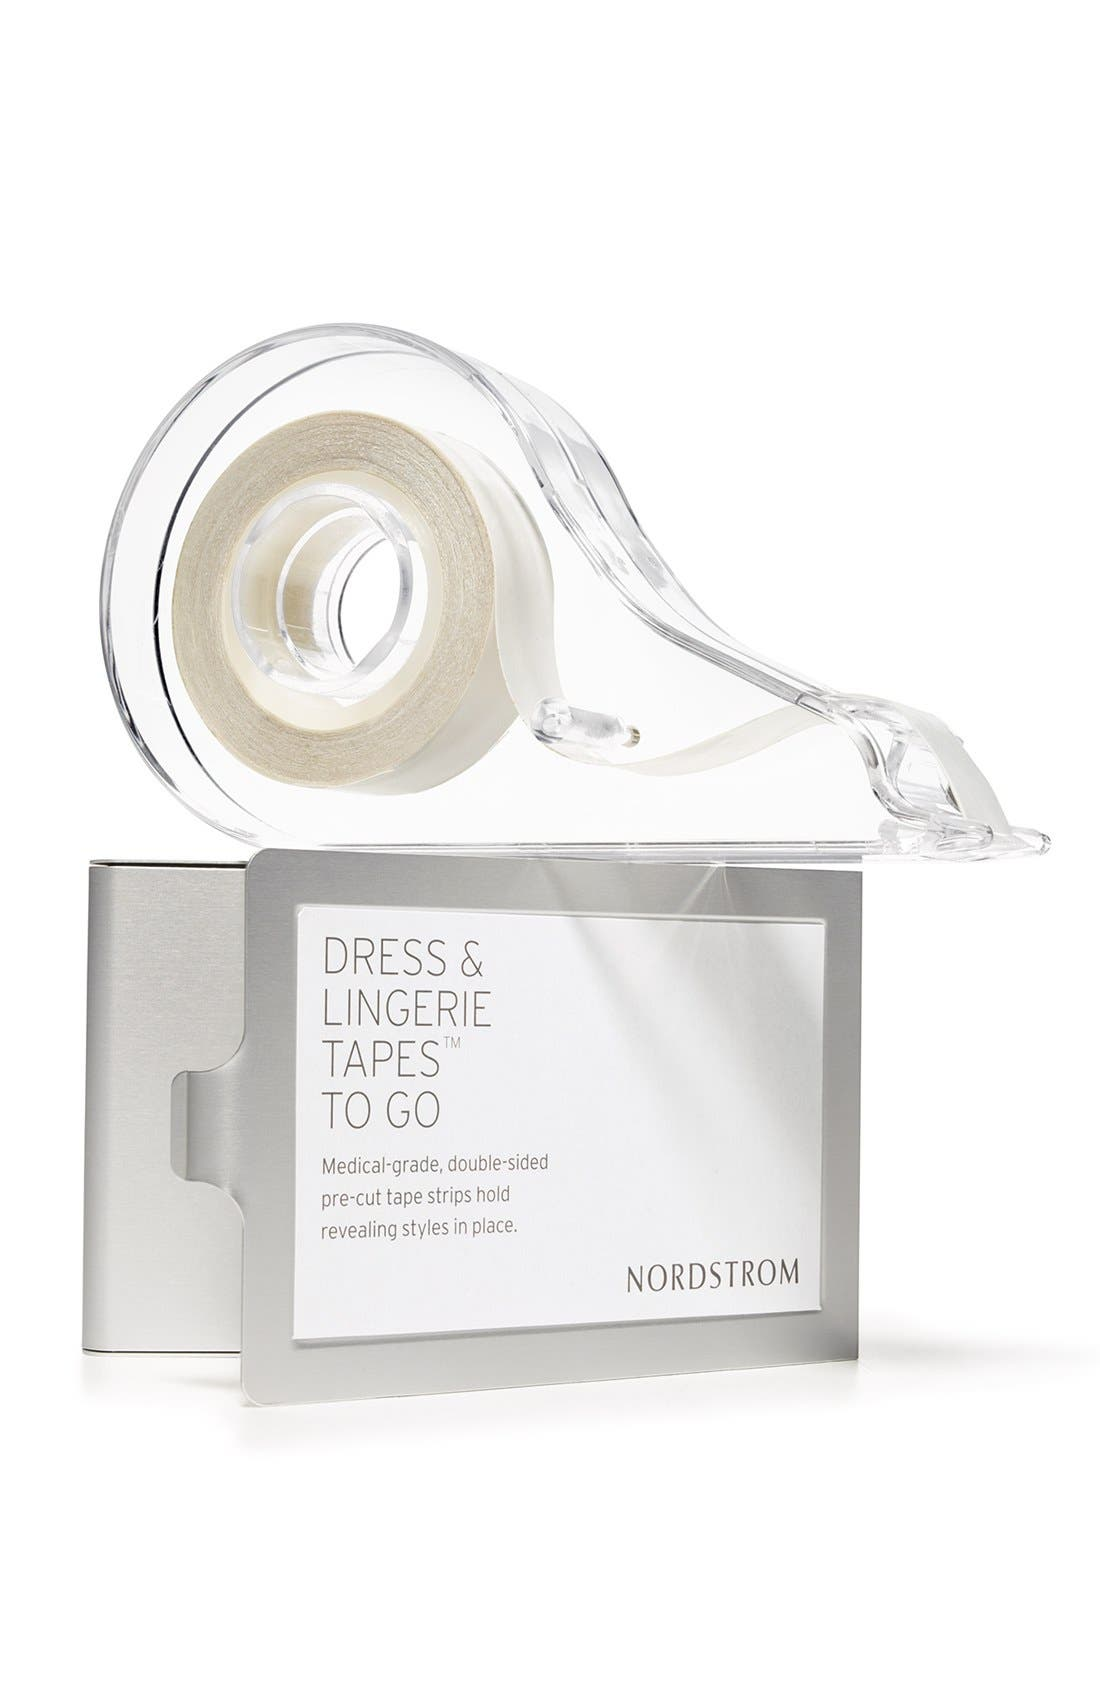 NORDSTROM LINGERIE,                             Dress & Lingerie Tapes<sup>™</sup> To Go,                             Alternate thumbnail 4, color,                             CLEAR